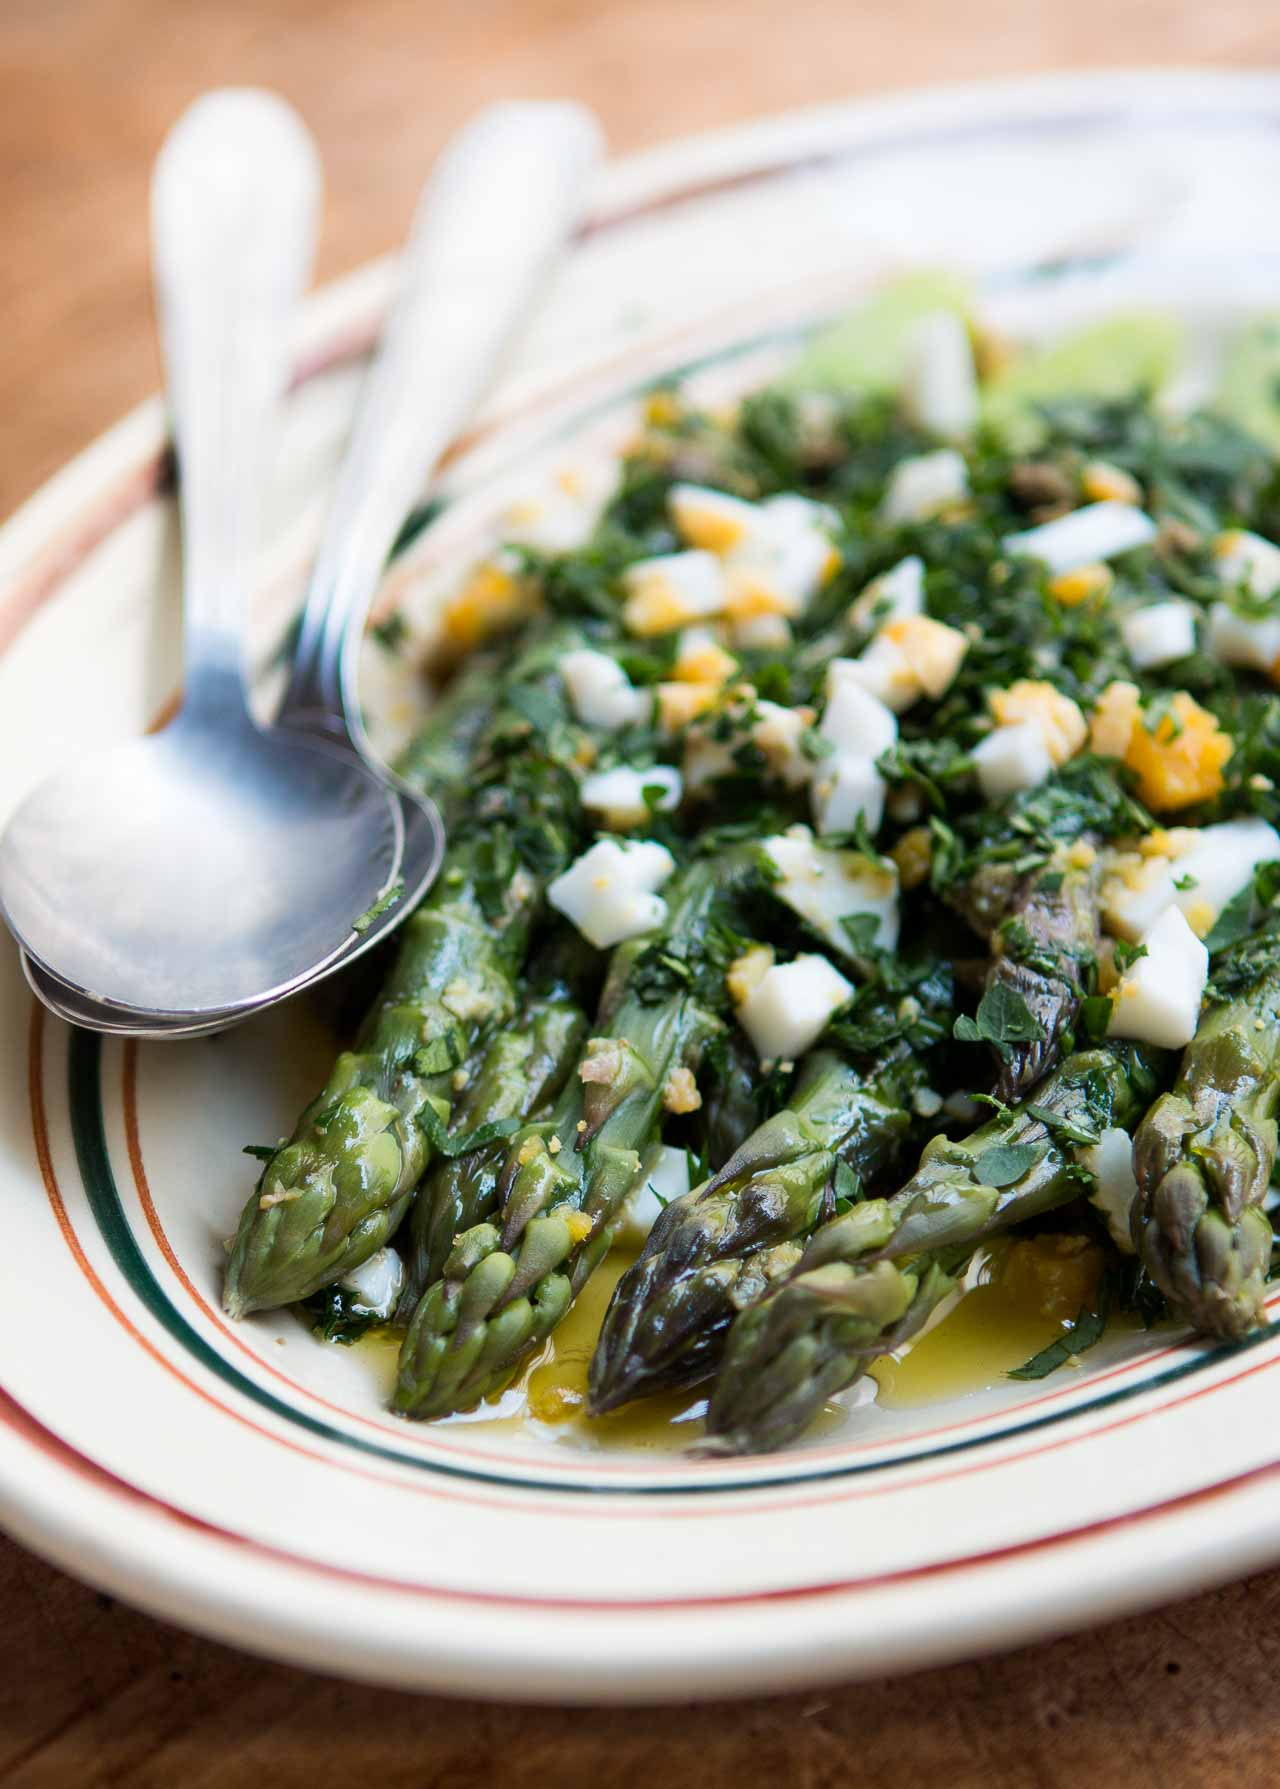 Fresh asparagus with this dish, with a vinaigrette sauce, tangy capers, hard-cooked eggs, and lots of fresh parsley!